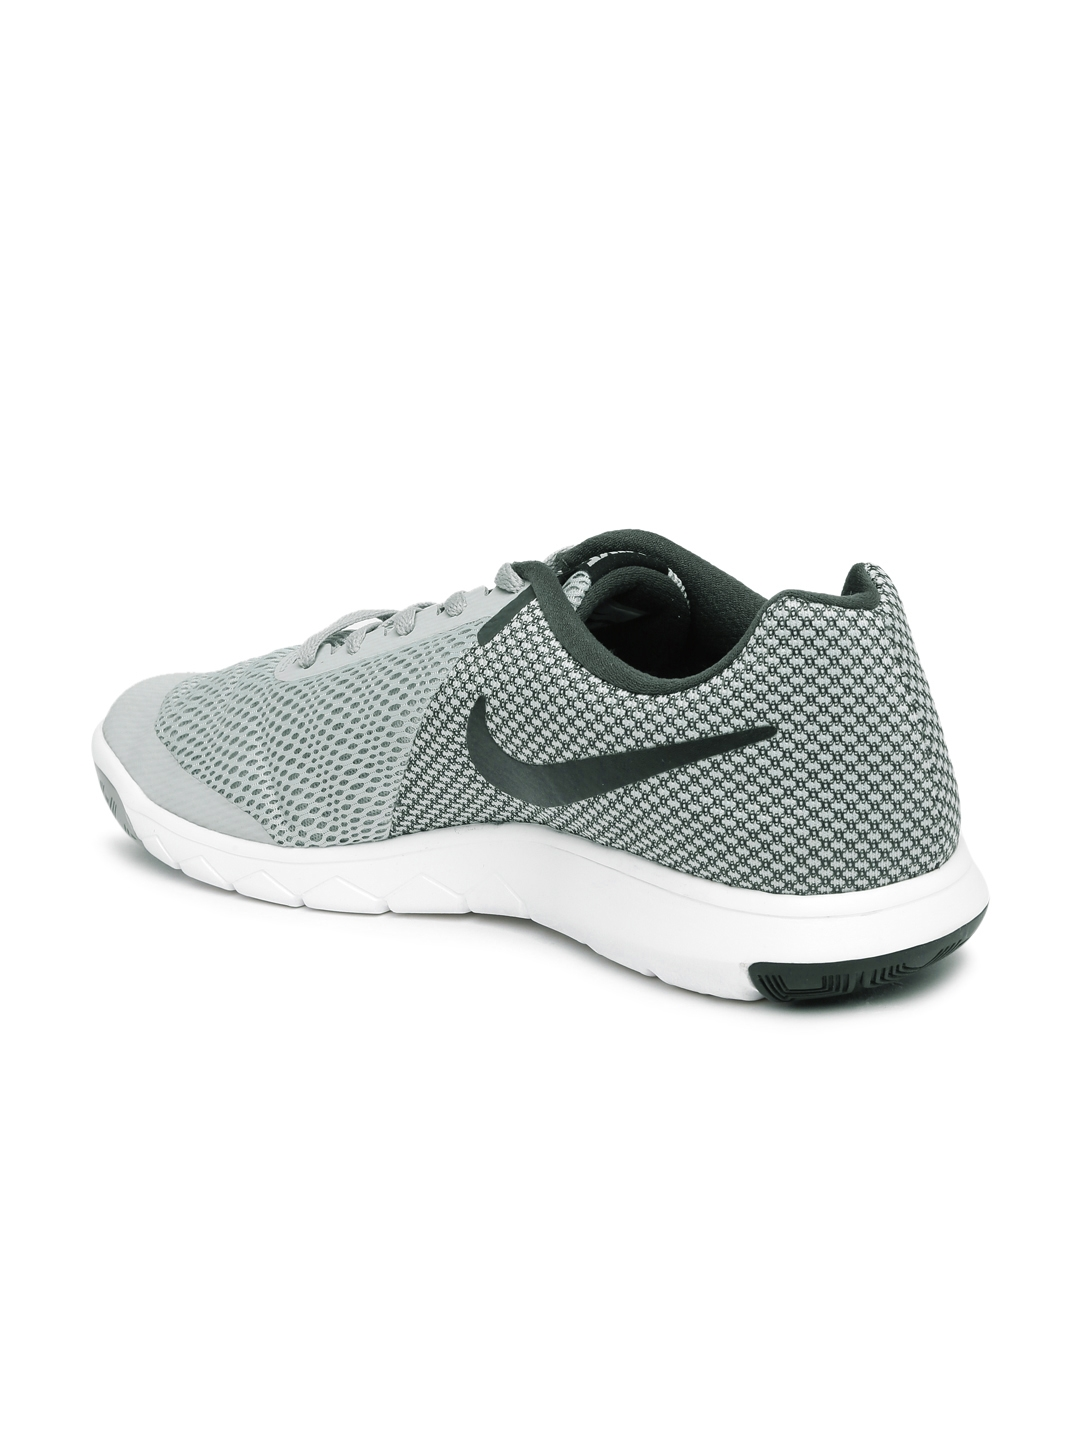 11fba9a741b4 Buy Nike Men Grey FLEX EXPERIENCE RN 6 Running Shoes - Sports Shoes for Men  1756815